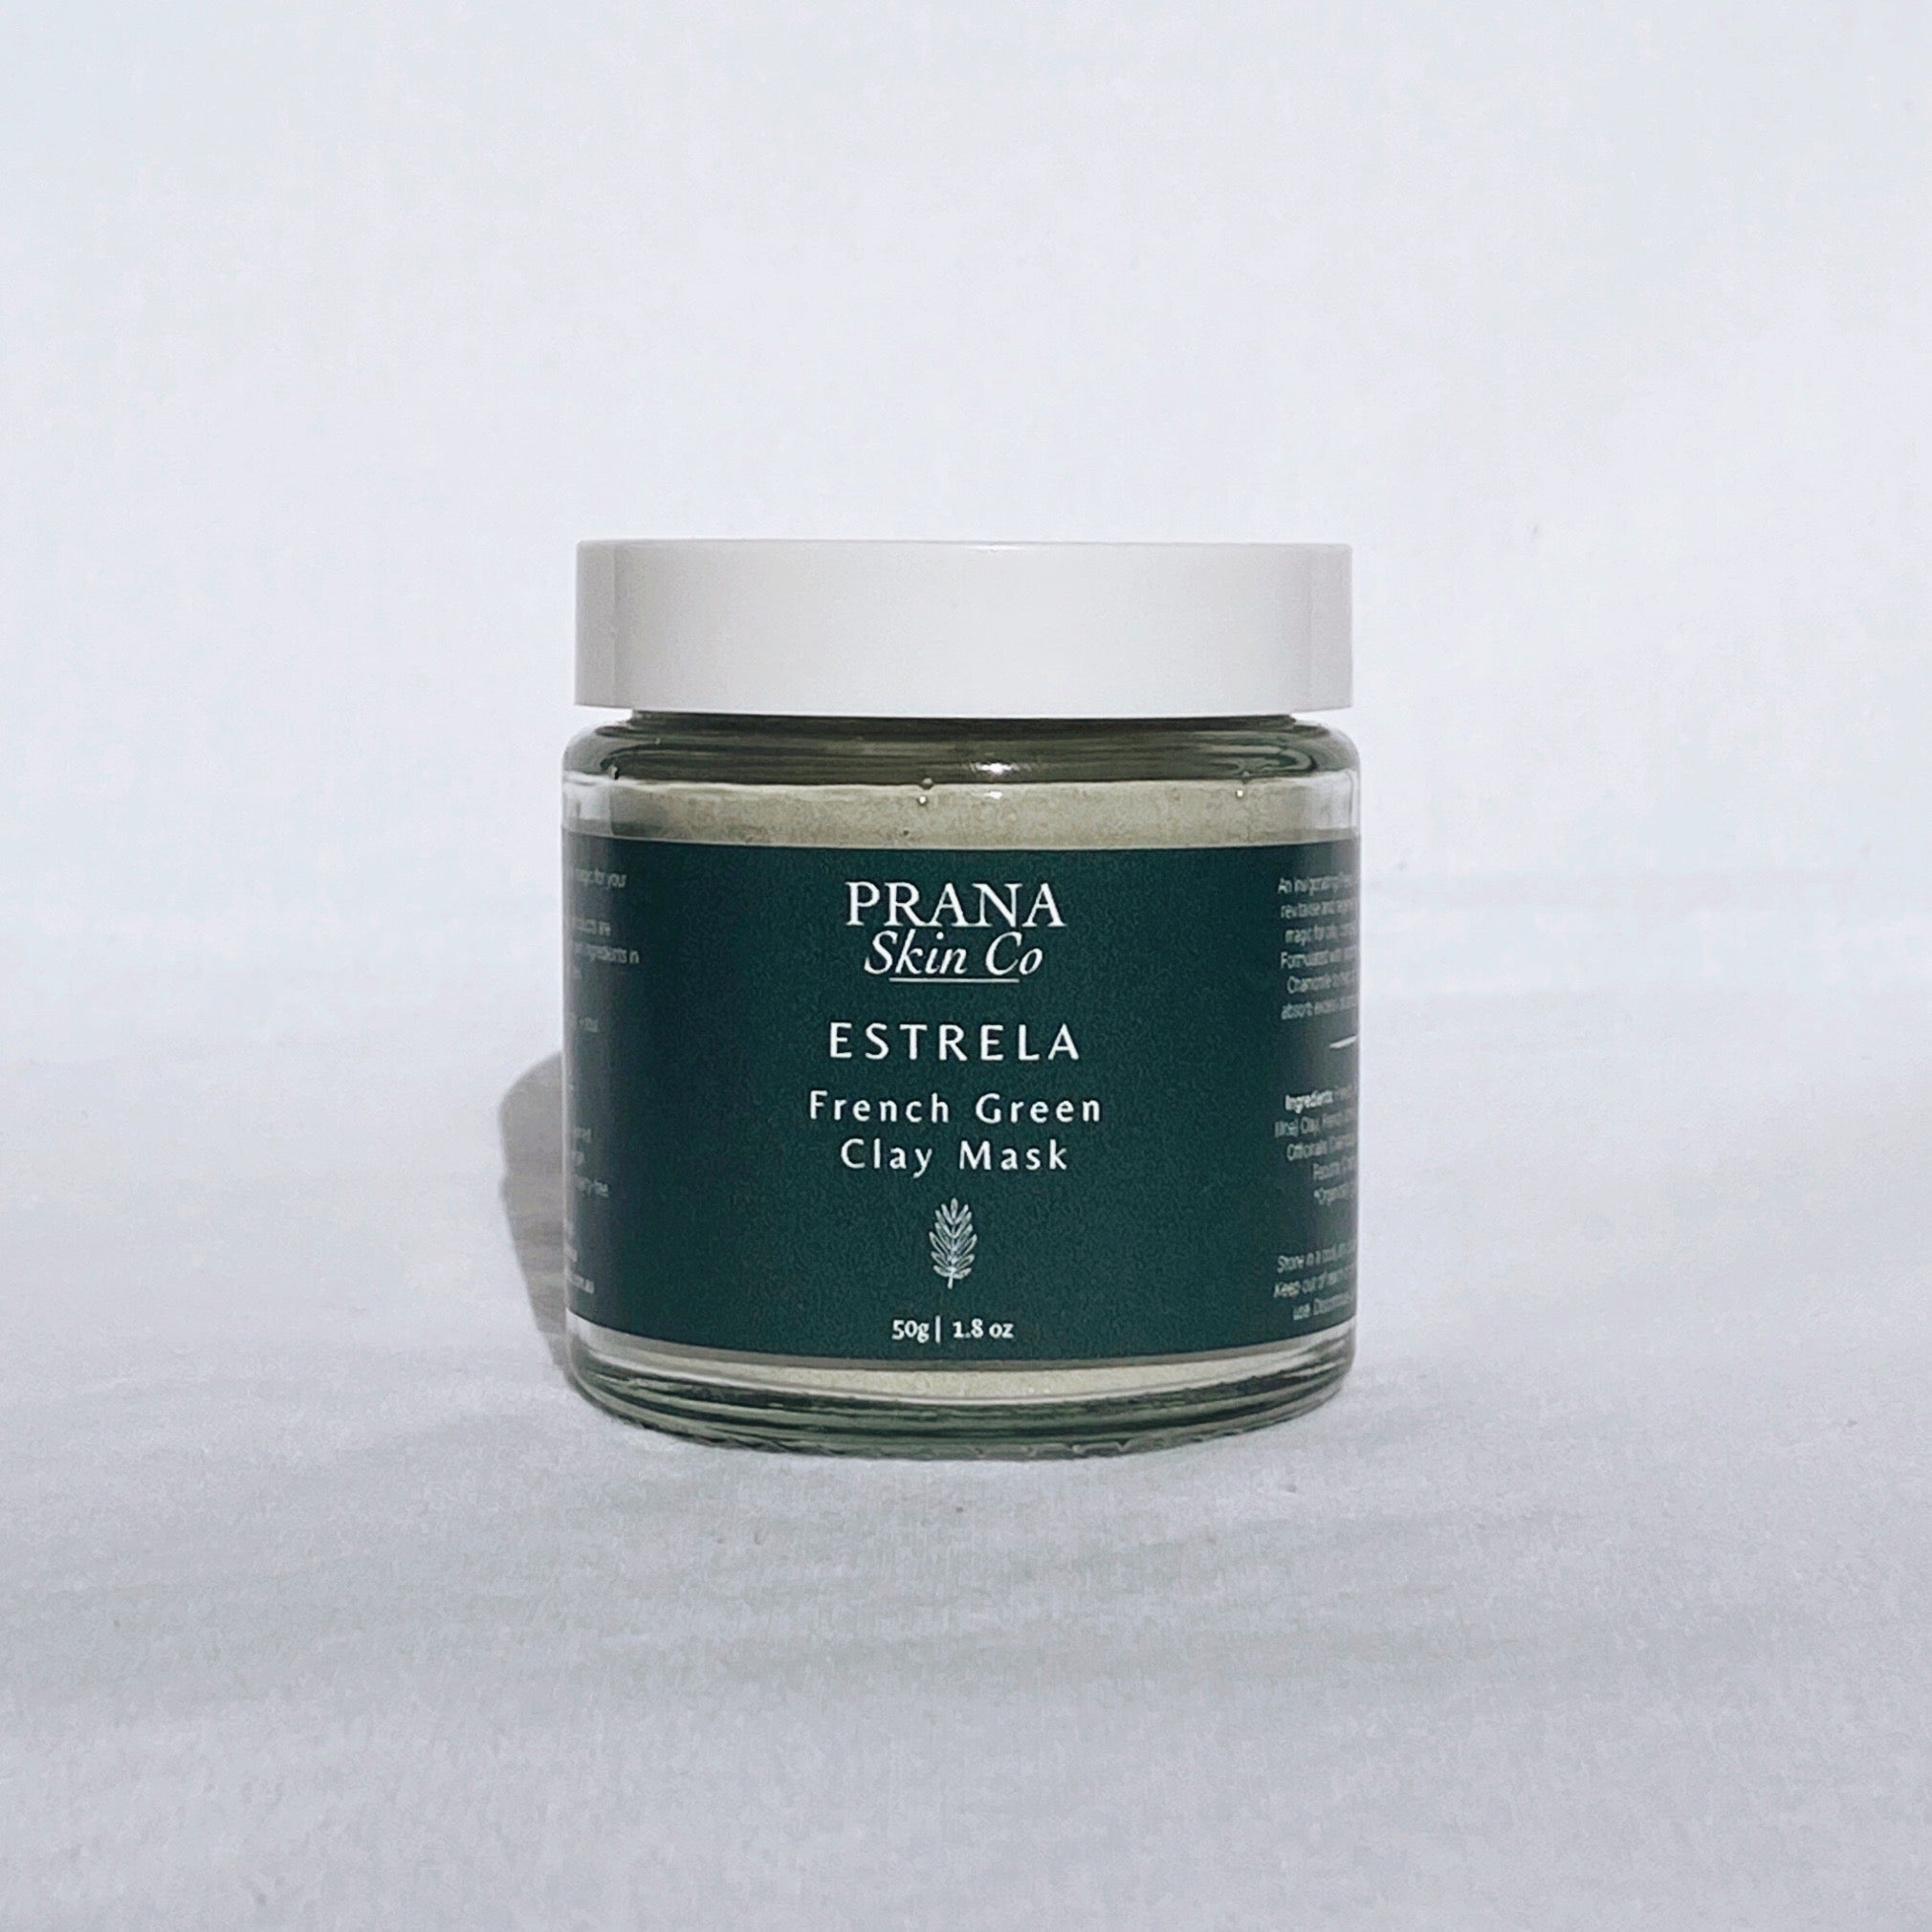 Prana Skin Co Estrela French Green Clay Mask